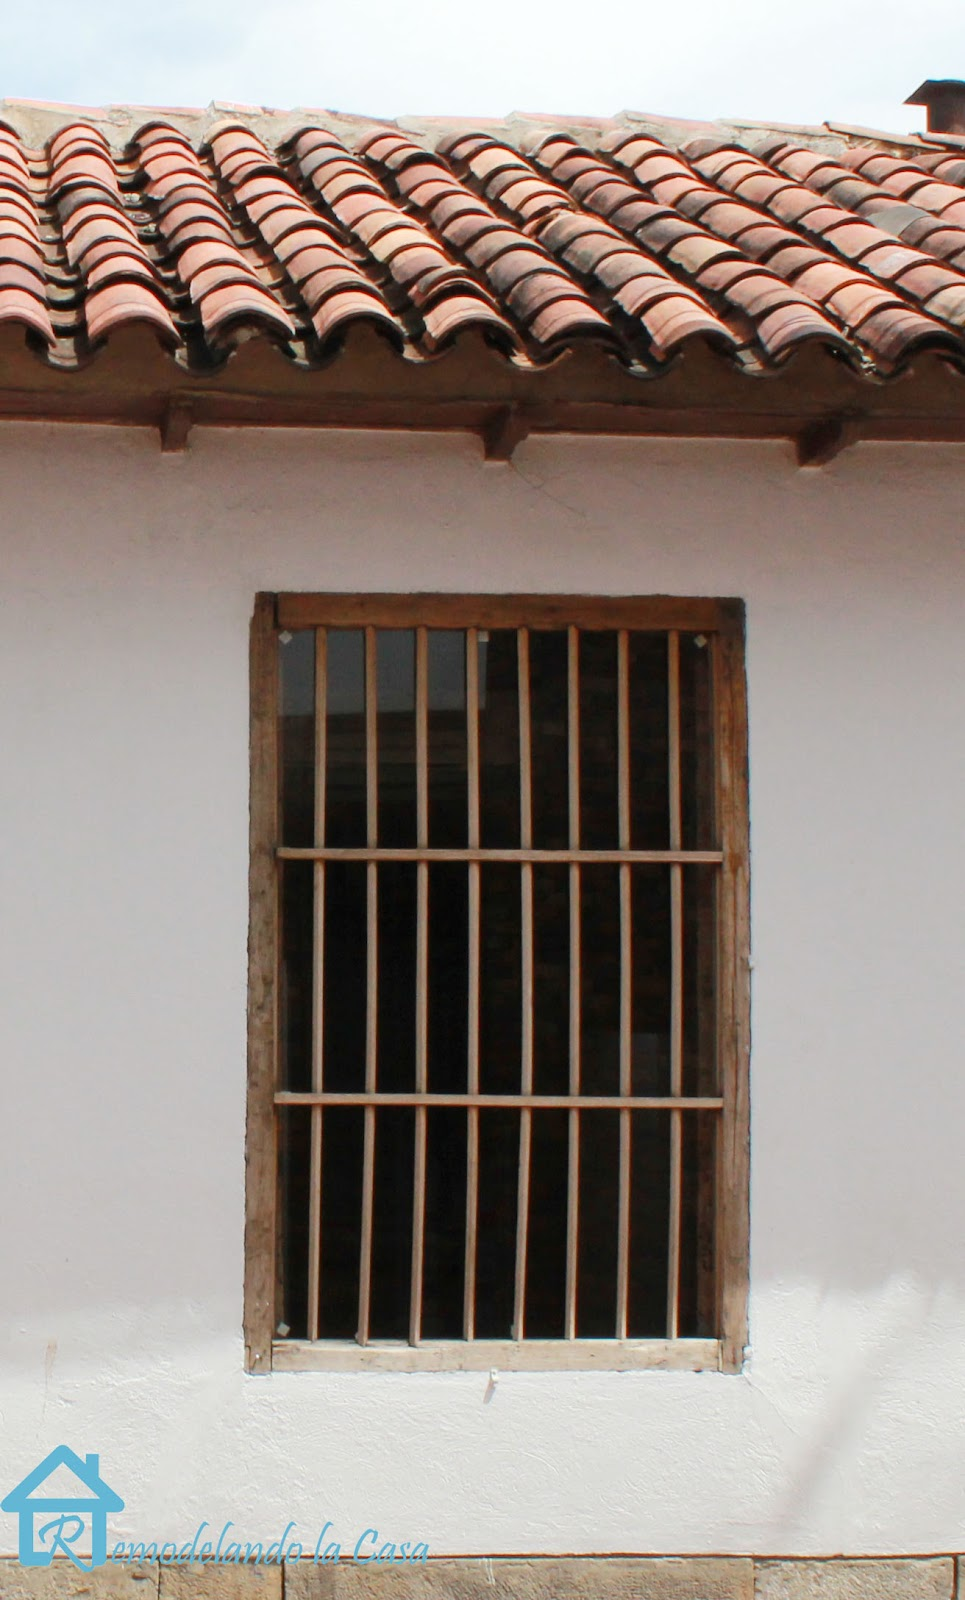 Spanish Style Wrought Iron Window Grills - Popular Home Designs